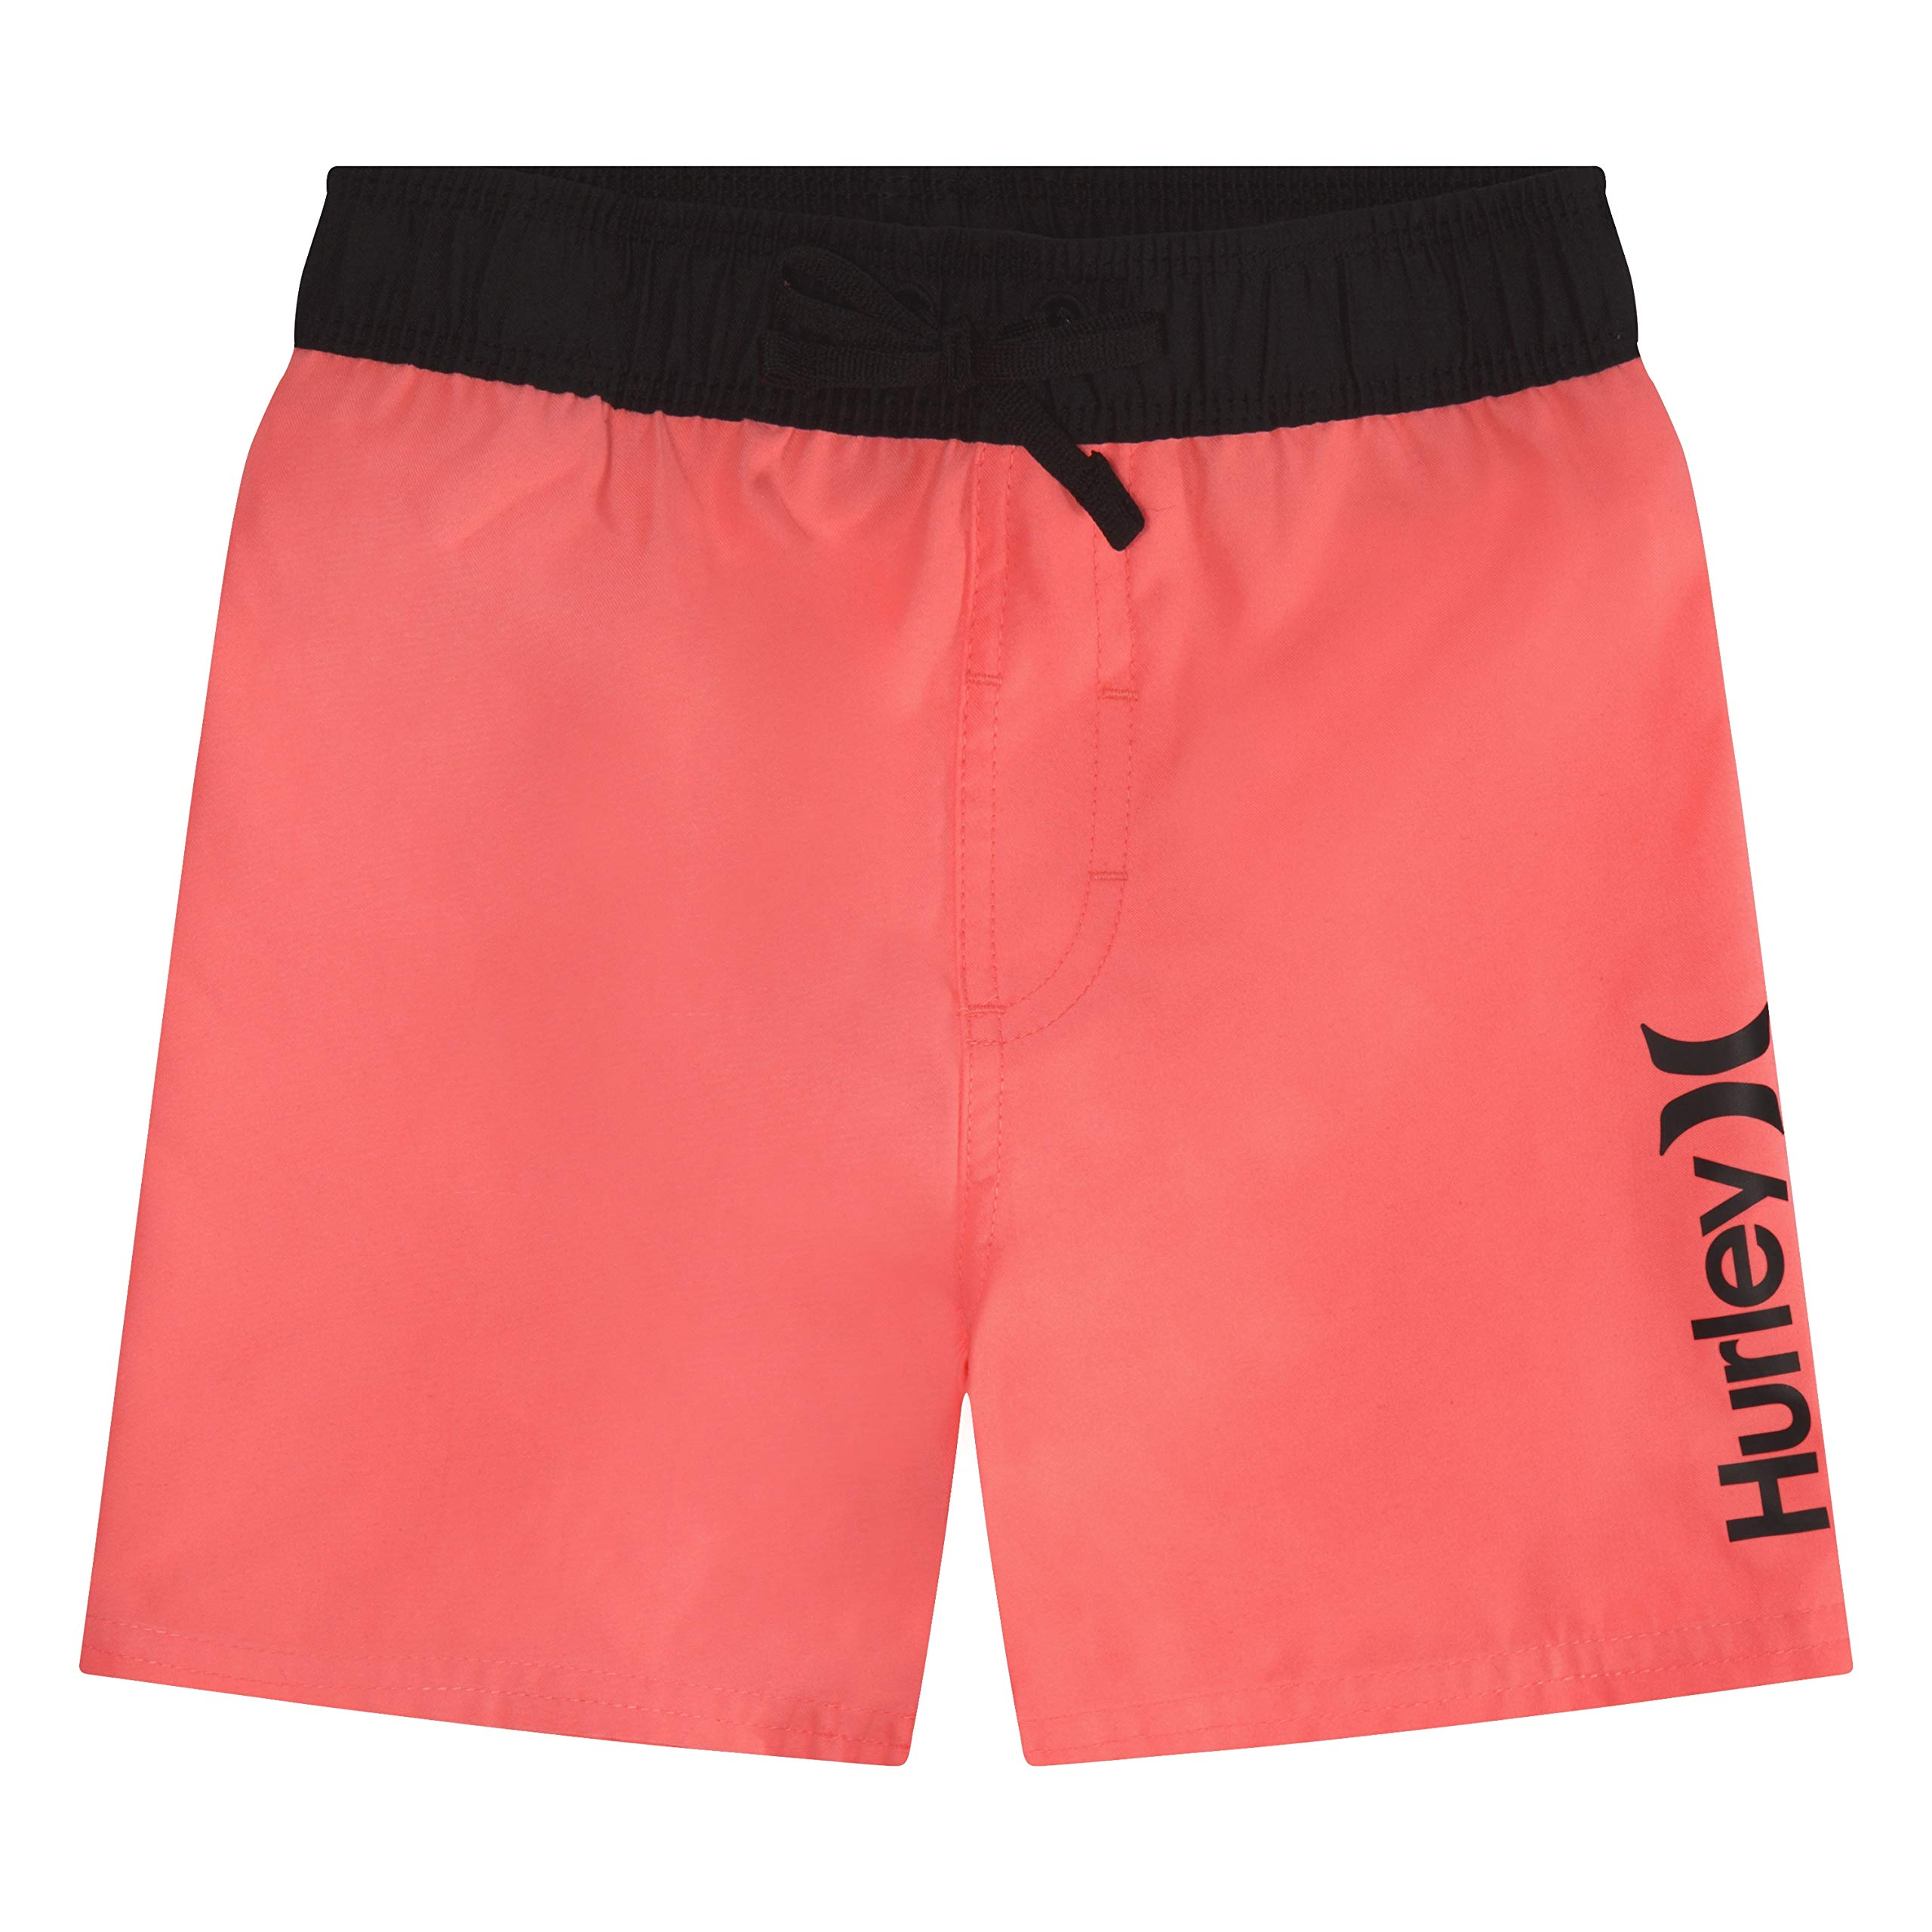 Hurley Boys' Big Pull On Board Shorts, Lava Glow S